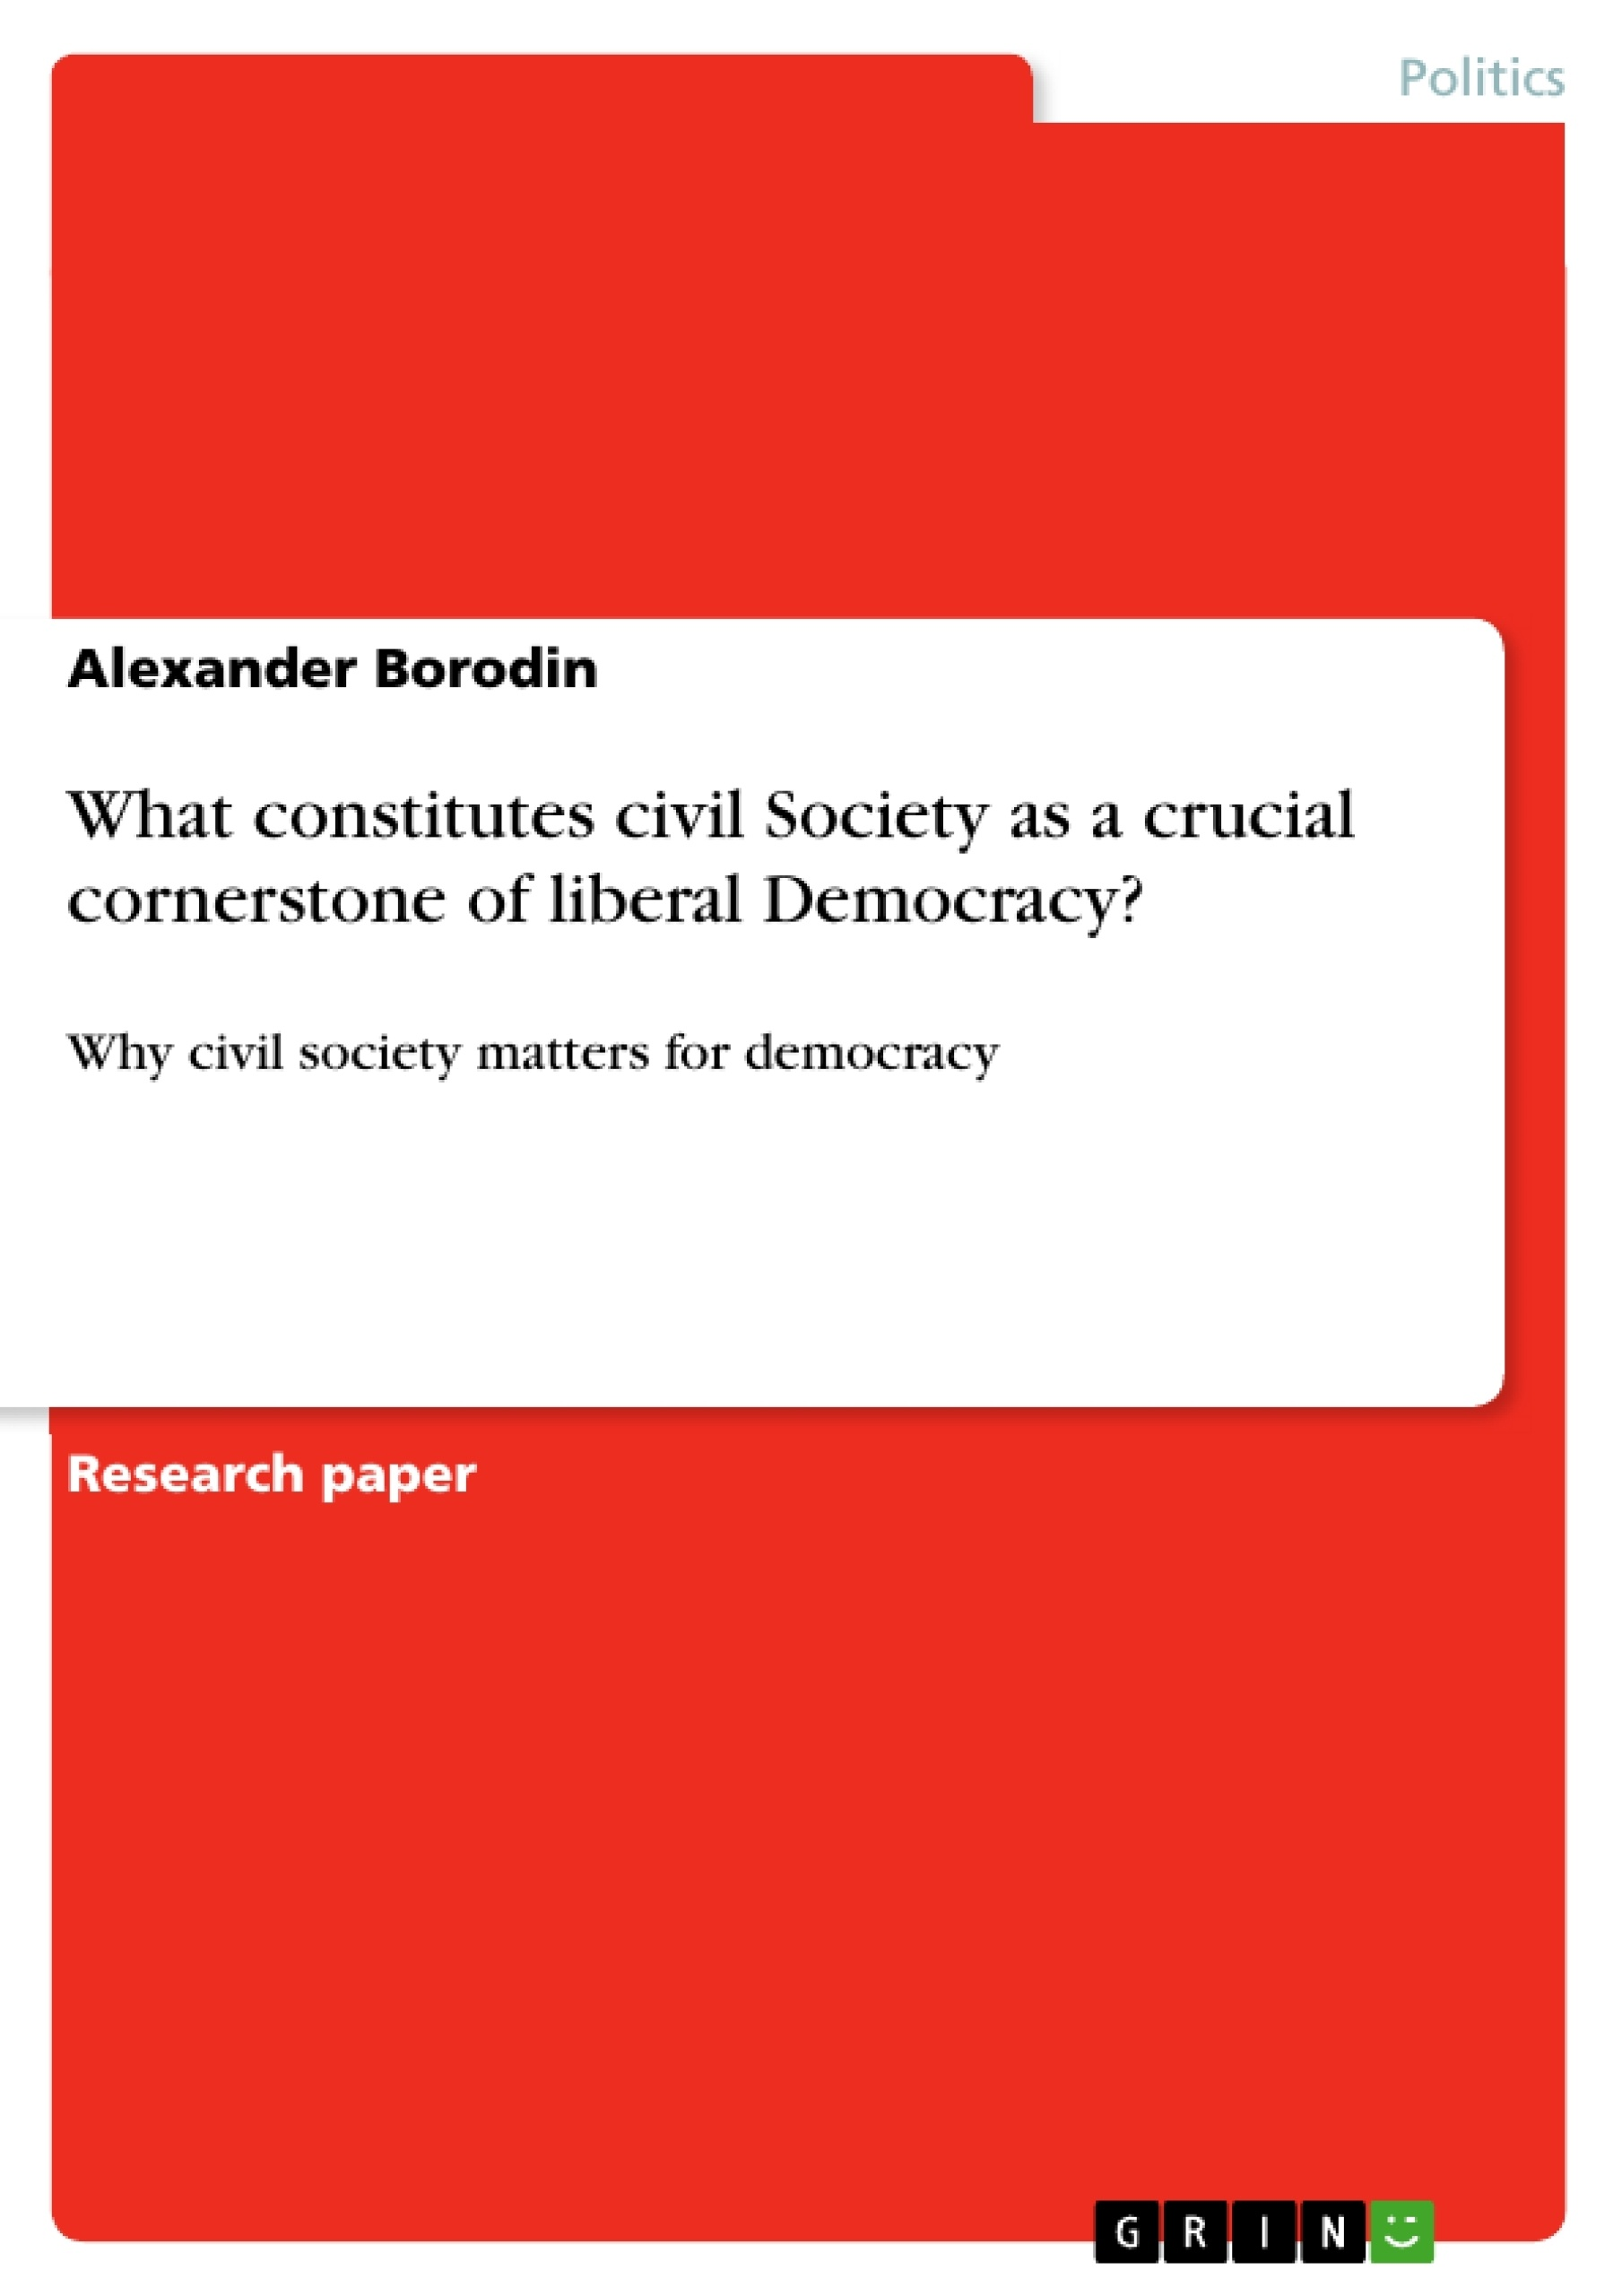 Title: What constitutes civil Society as a crucial cornerstone of liberal Democracy?